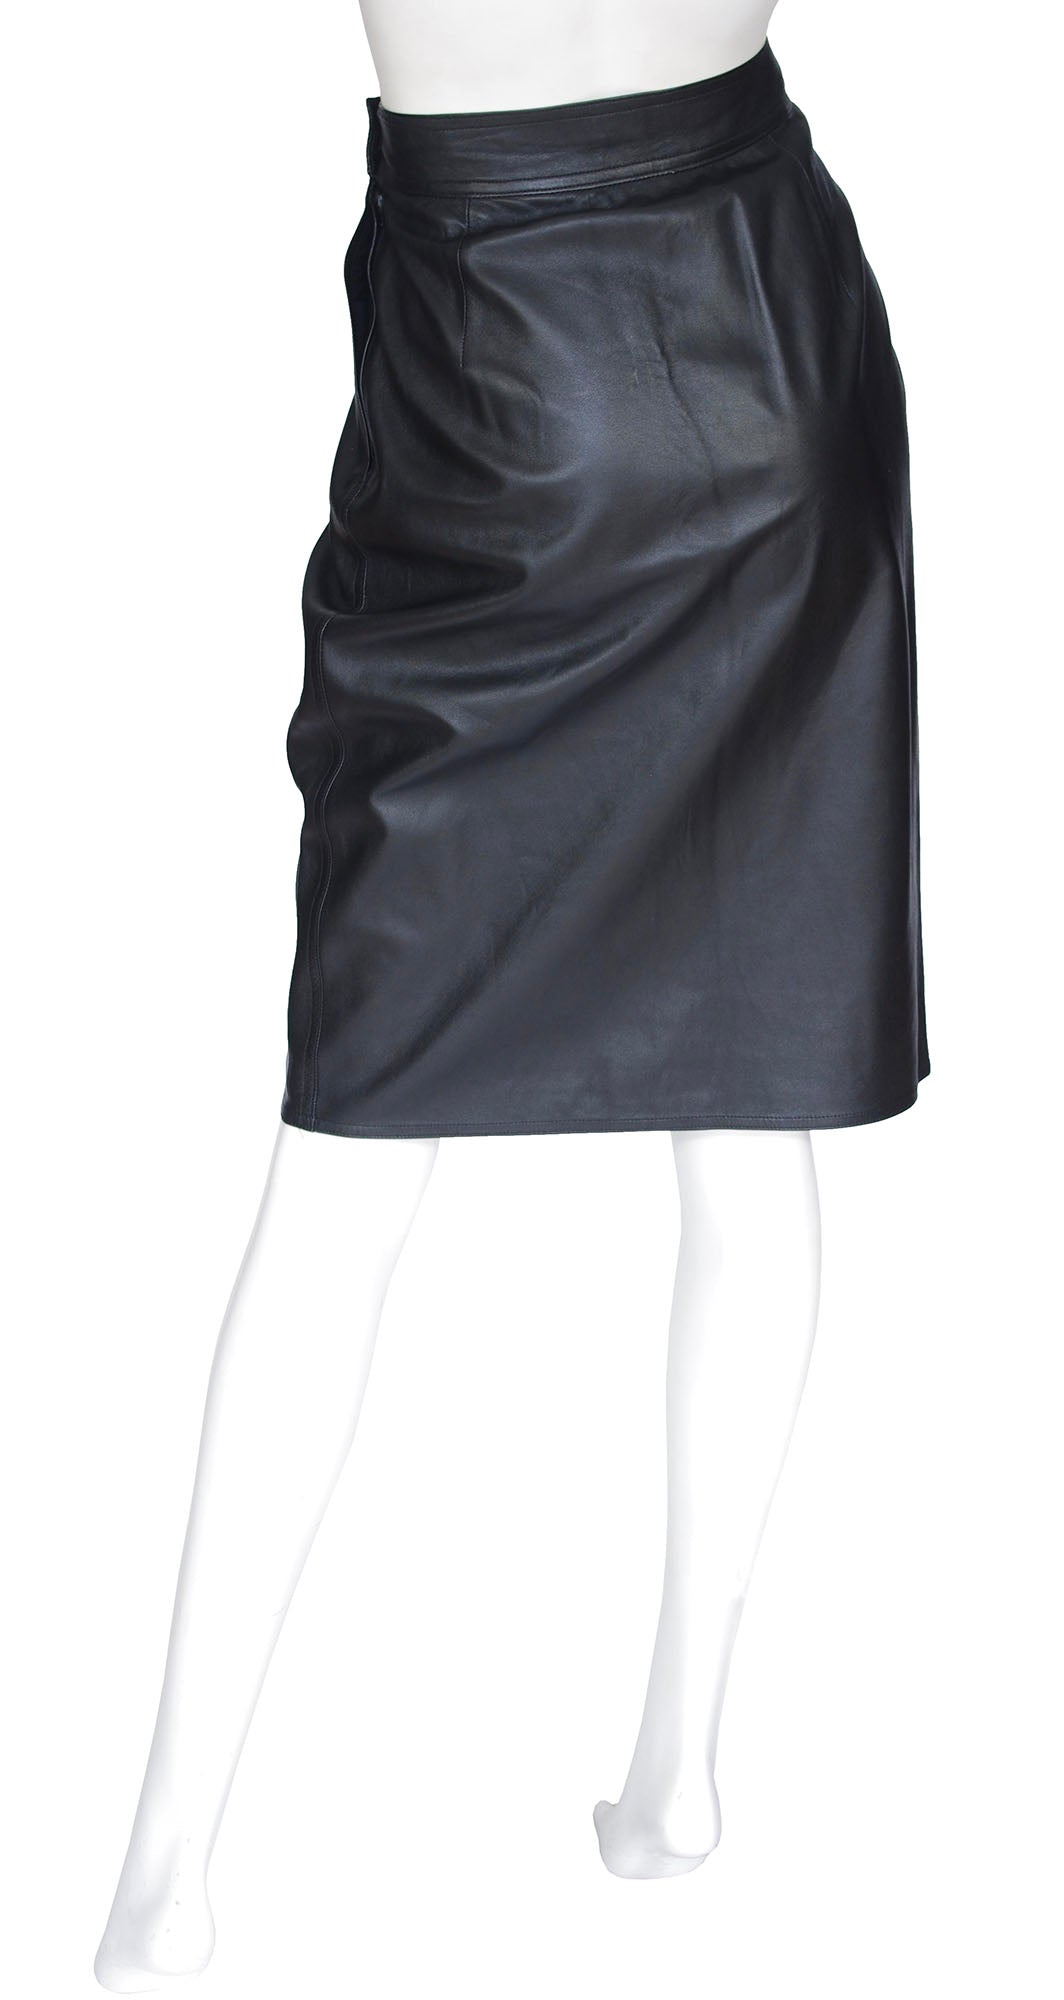 1980s Black Lamb Leather High Waisted Skirt